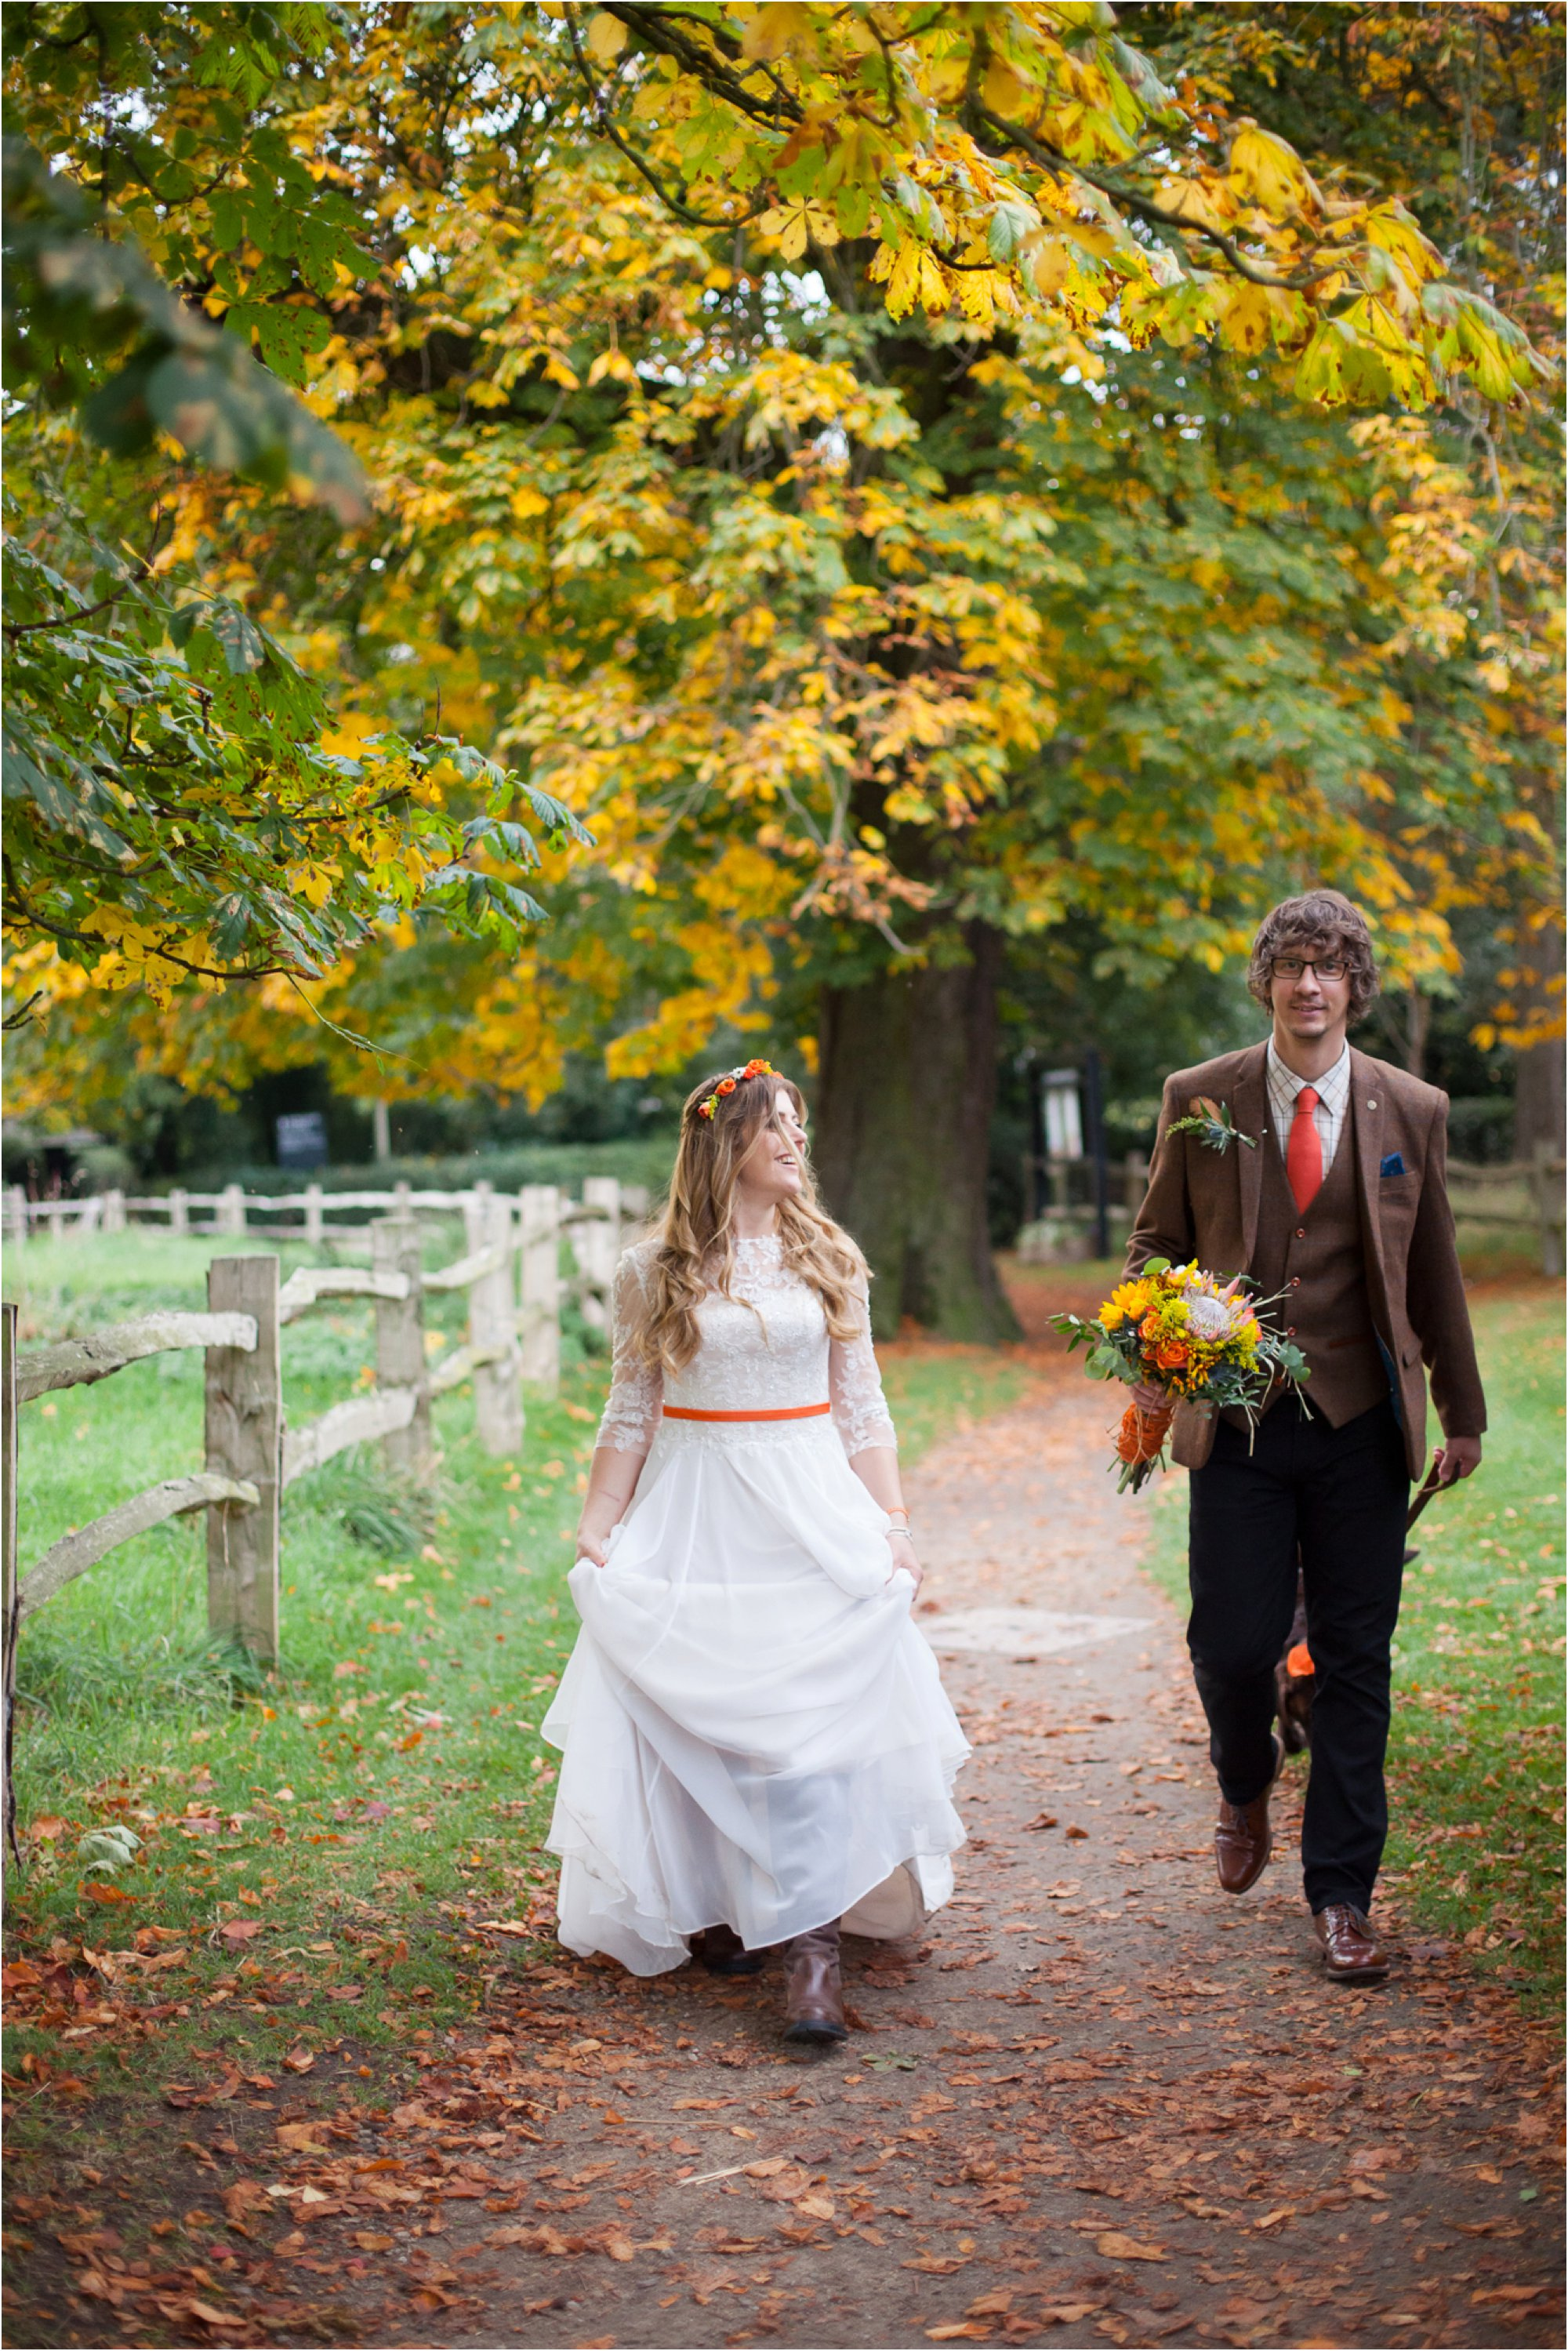 Styal_Wedding_Wilmslow_Cheshire_Autumn_Colourful_photography_0122.jpg